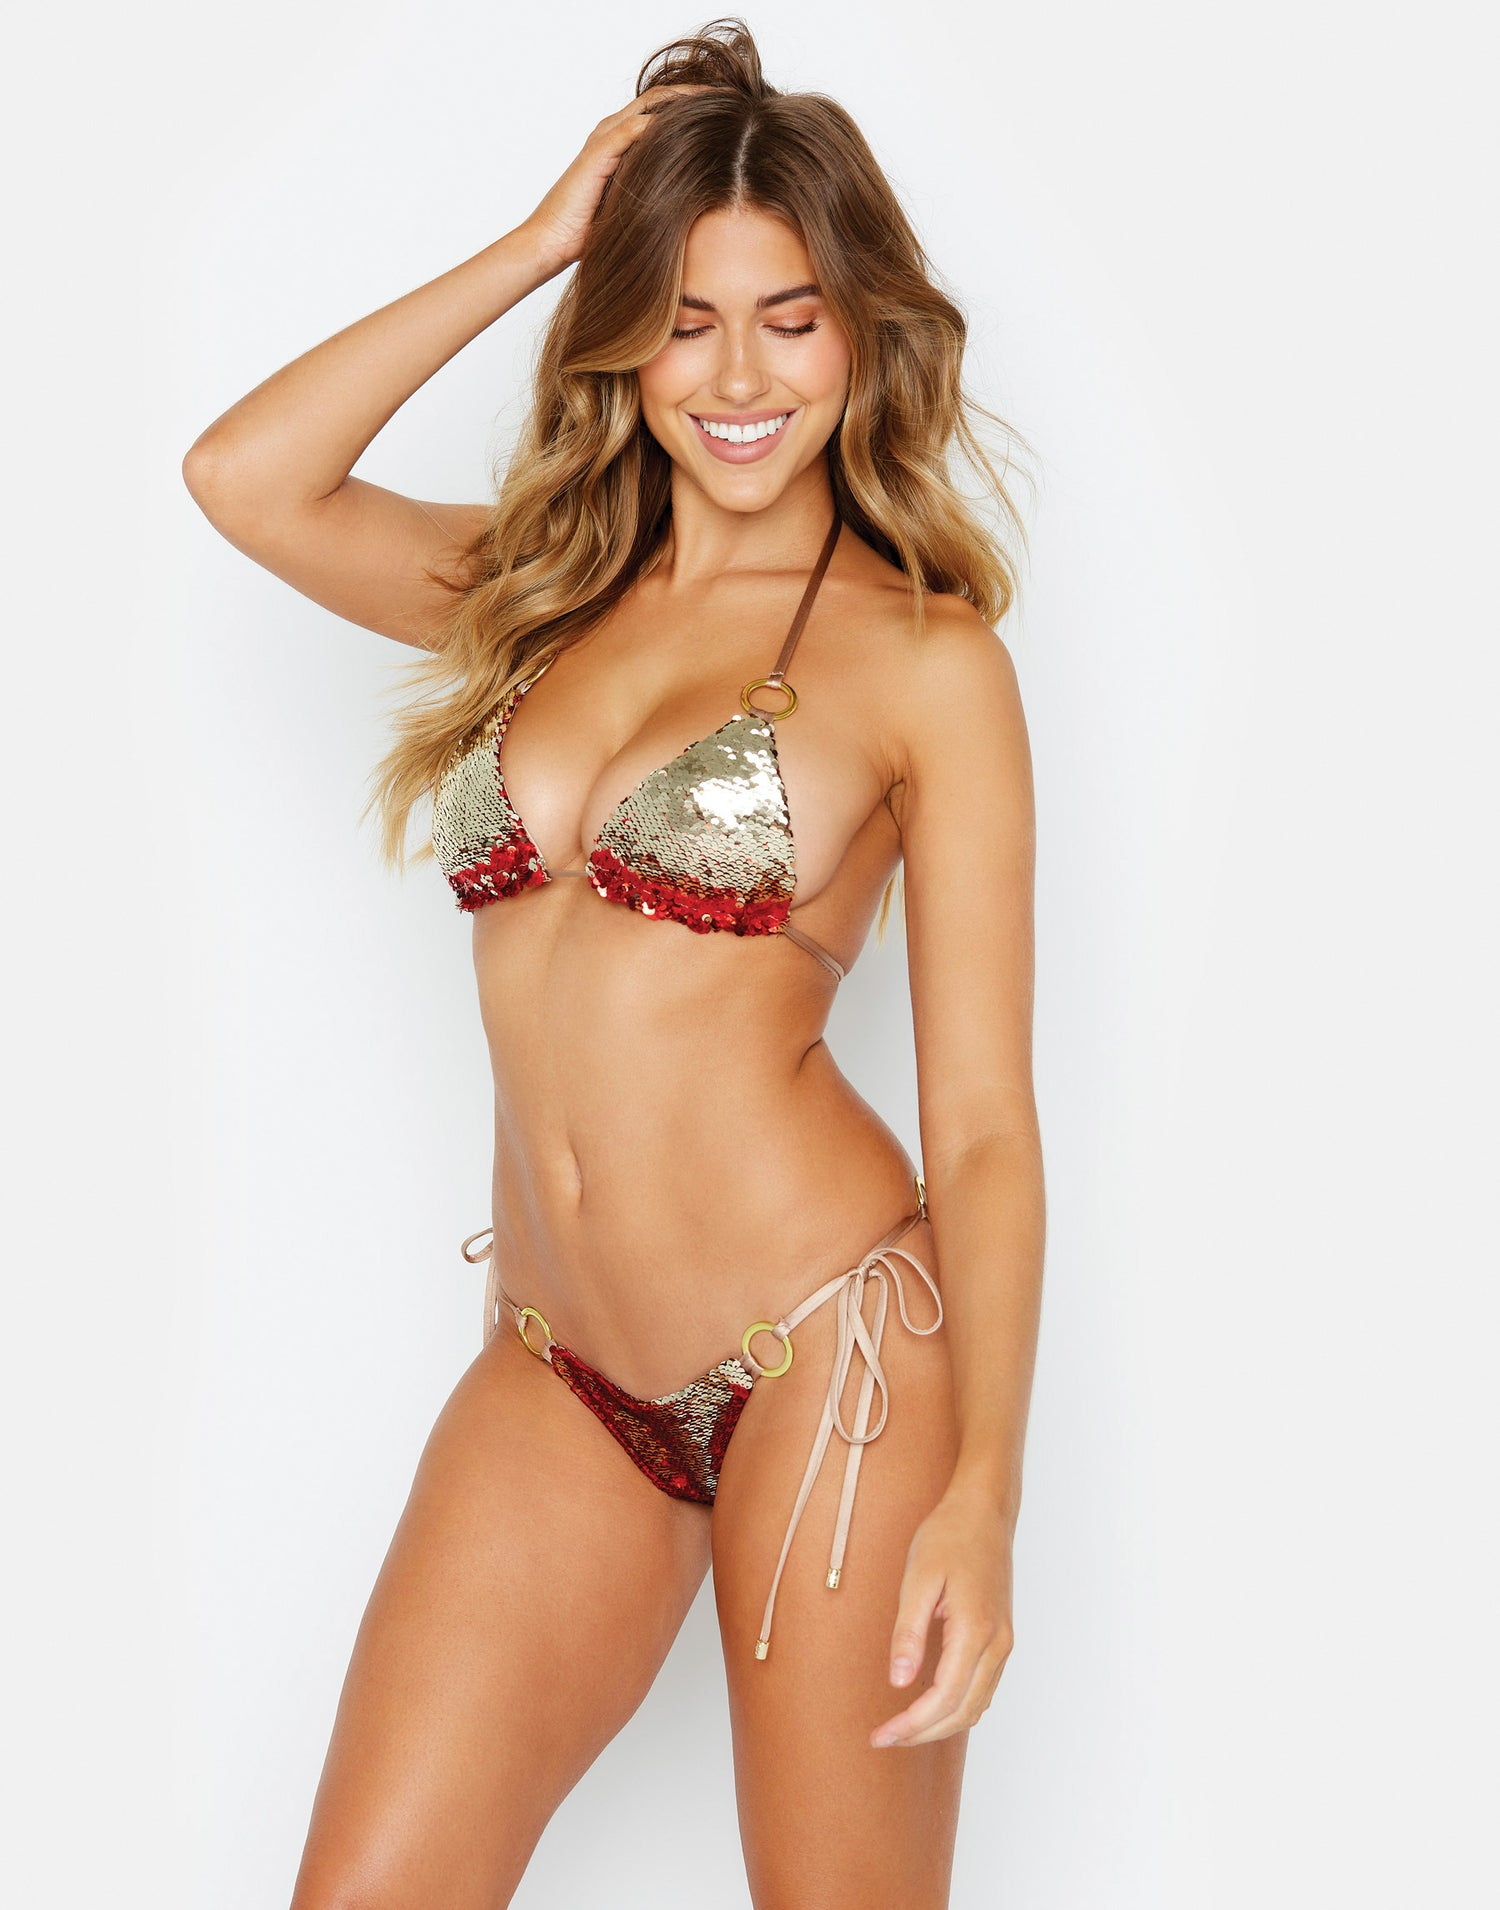 Siren Song Tie Side Skimpy Bikini Bottom in Red and Gold Sequins - alternate front view